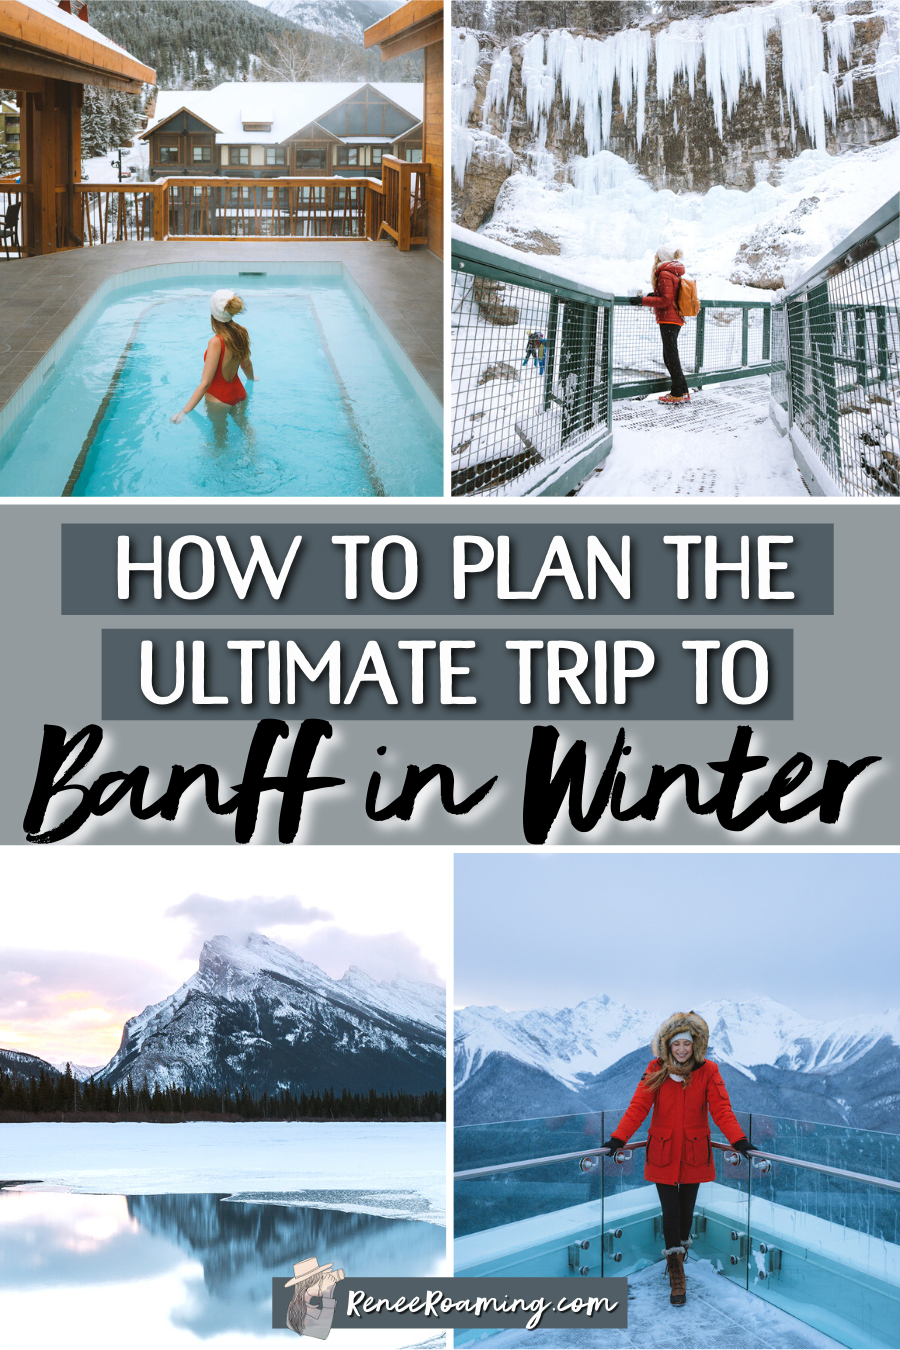 Planning a Trip toBanffin Winter - Read This Before You Visit!